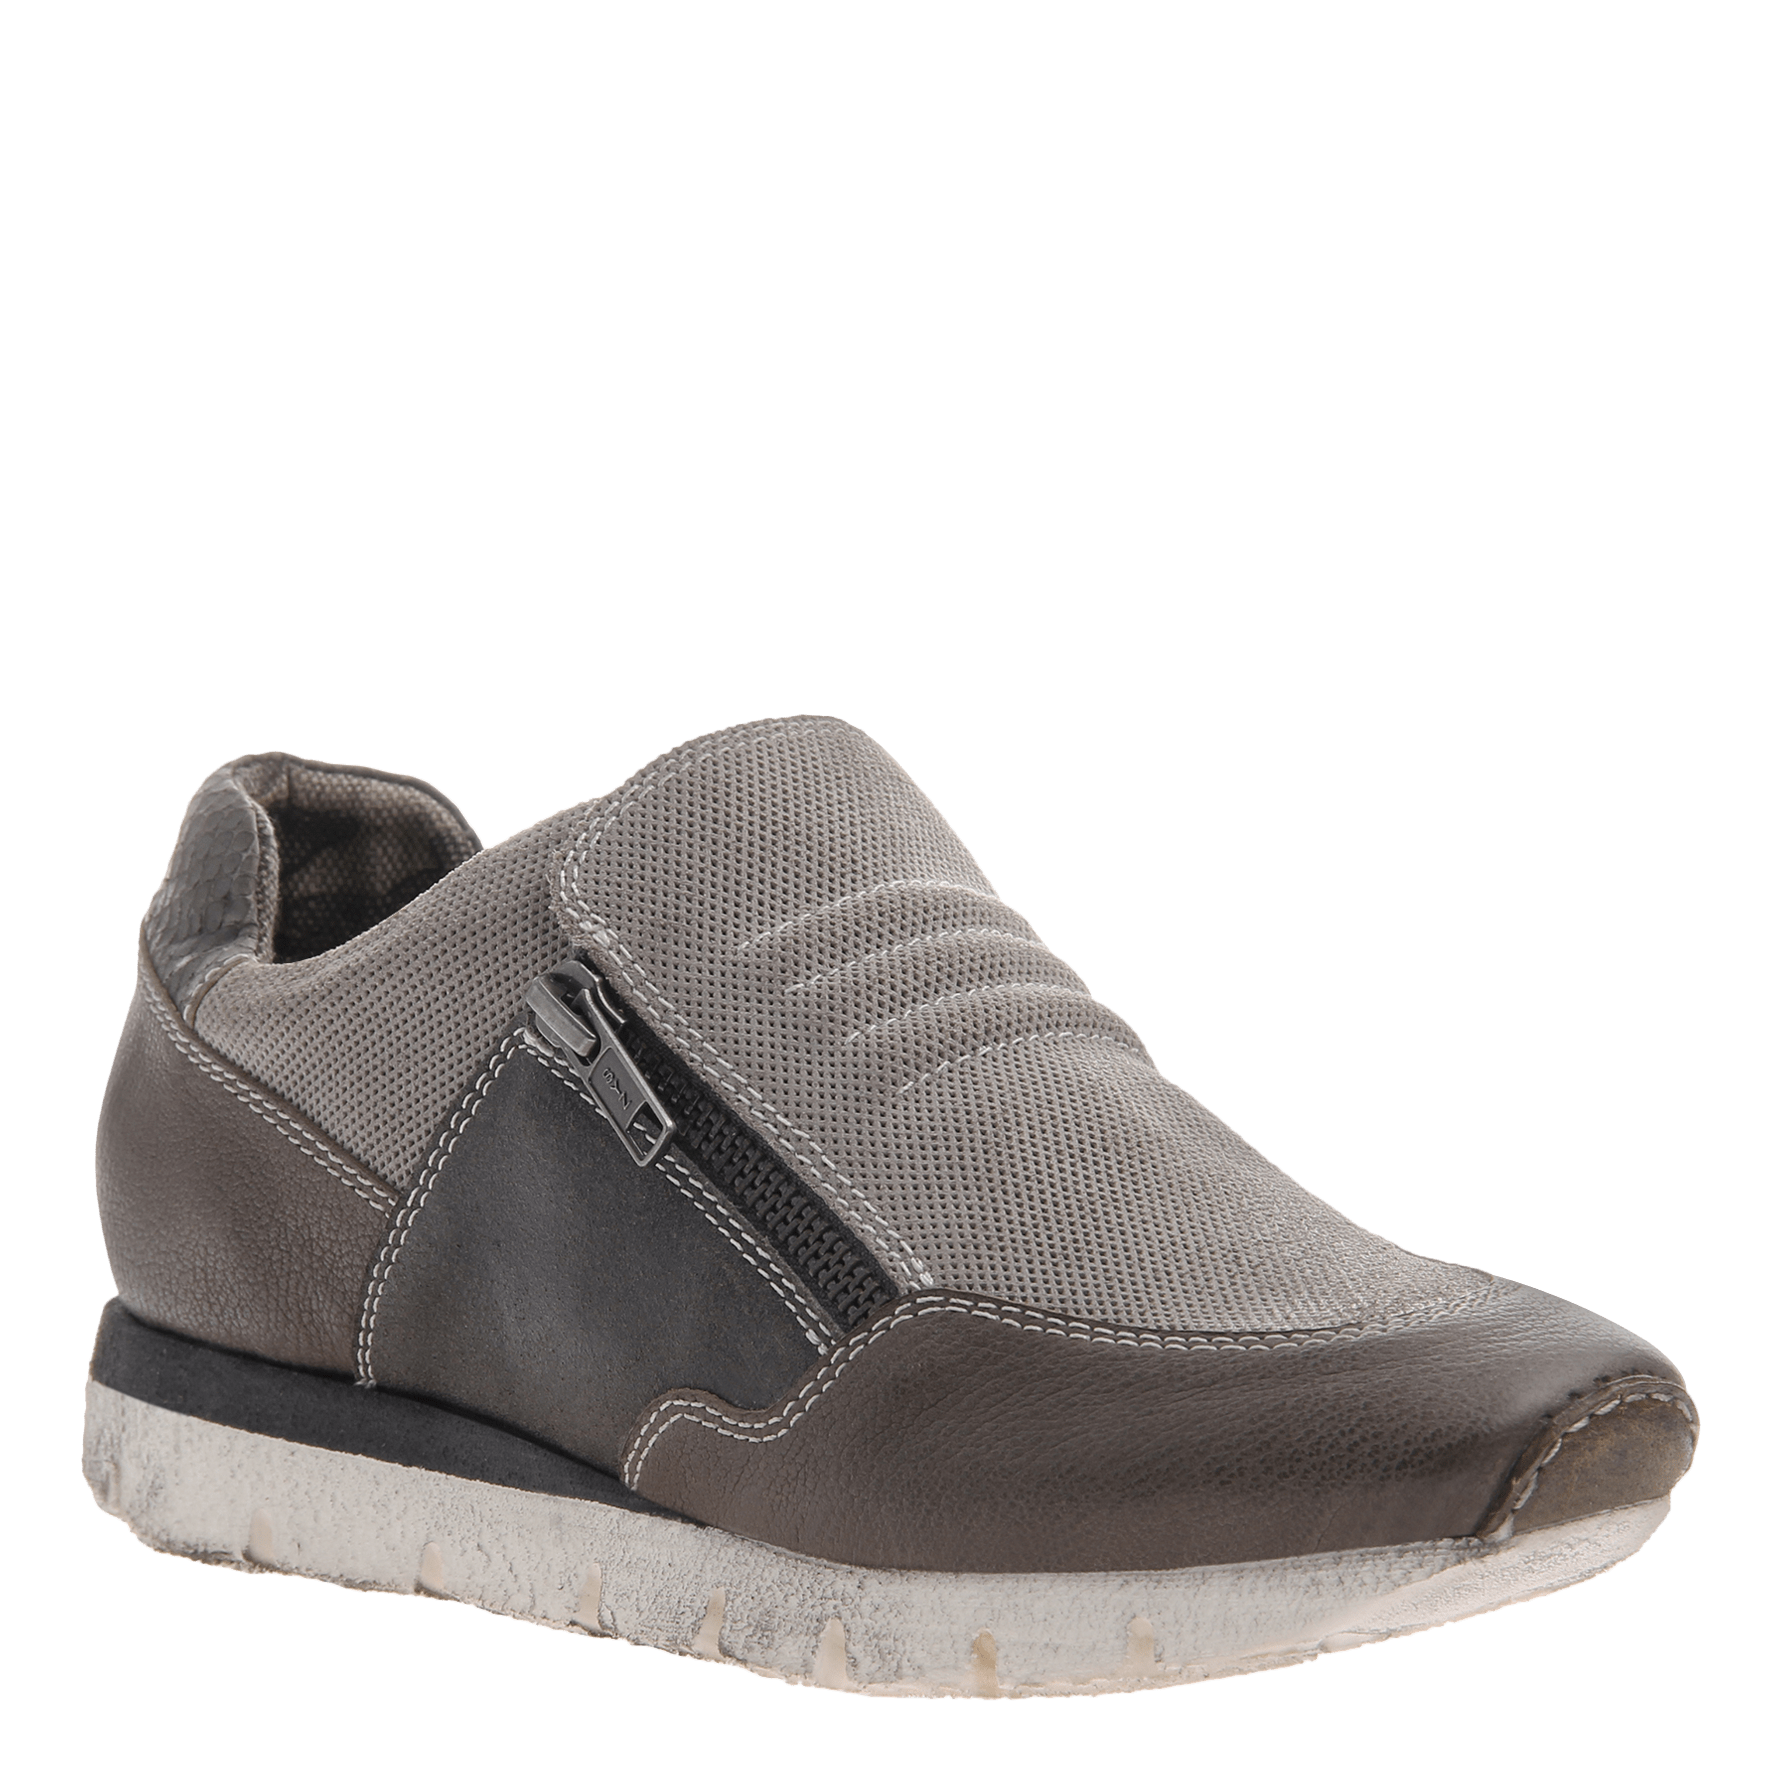 Sewell double zipper sneaker in grey